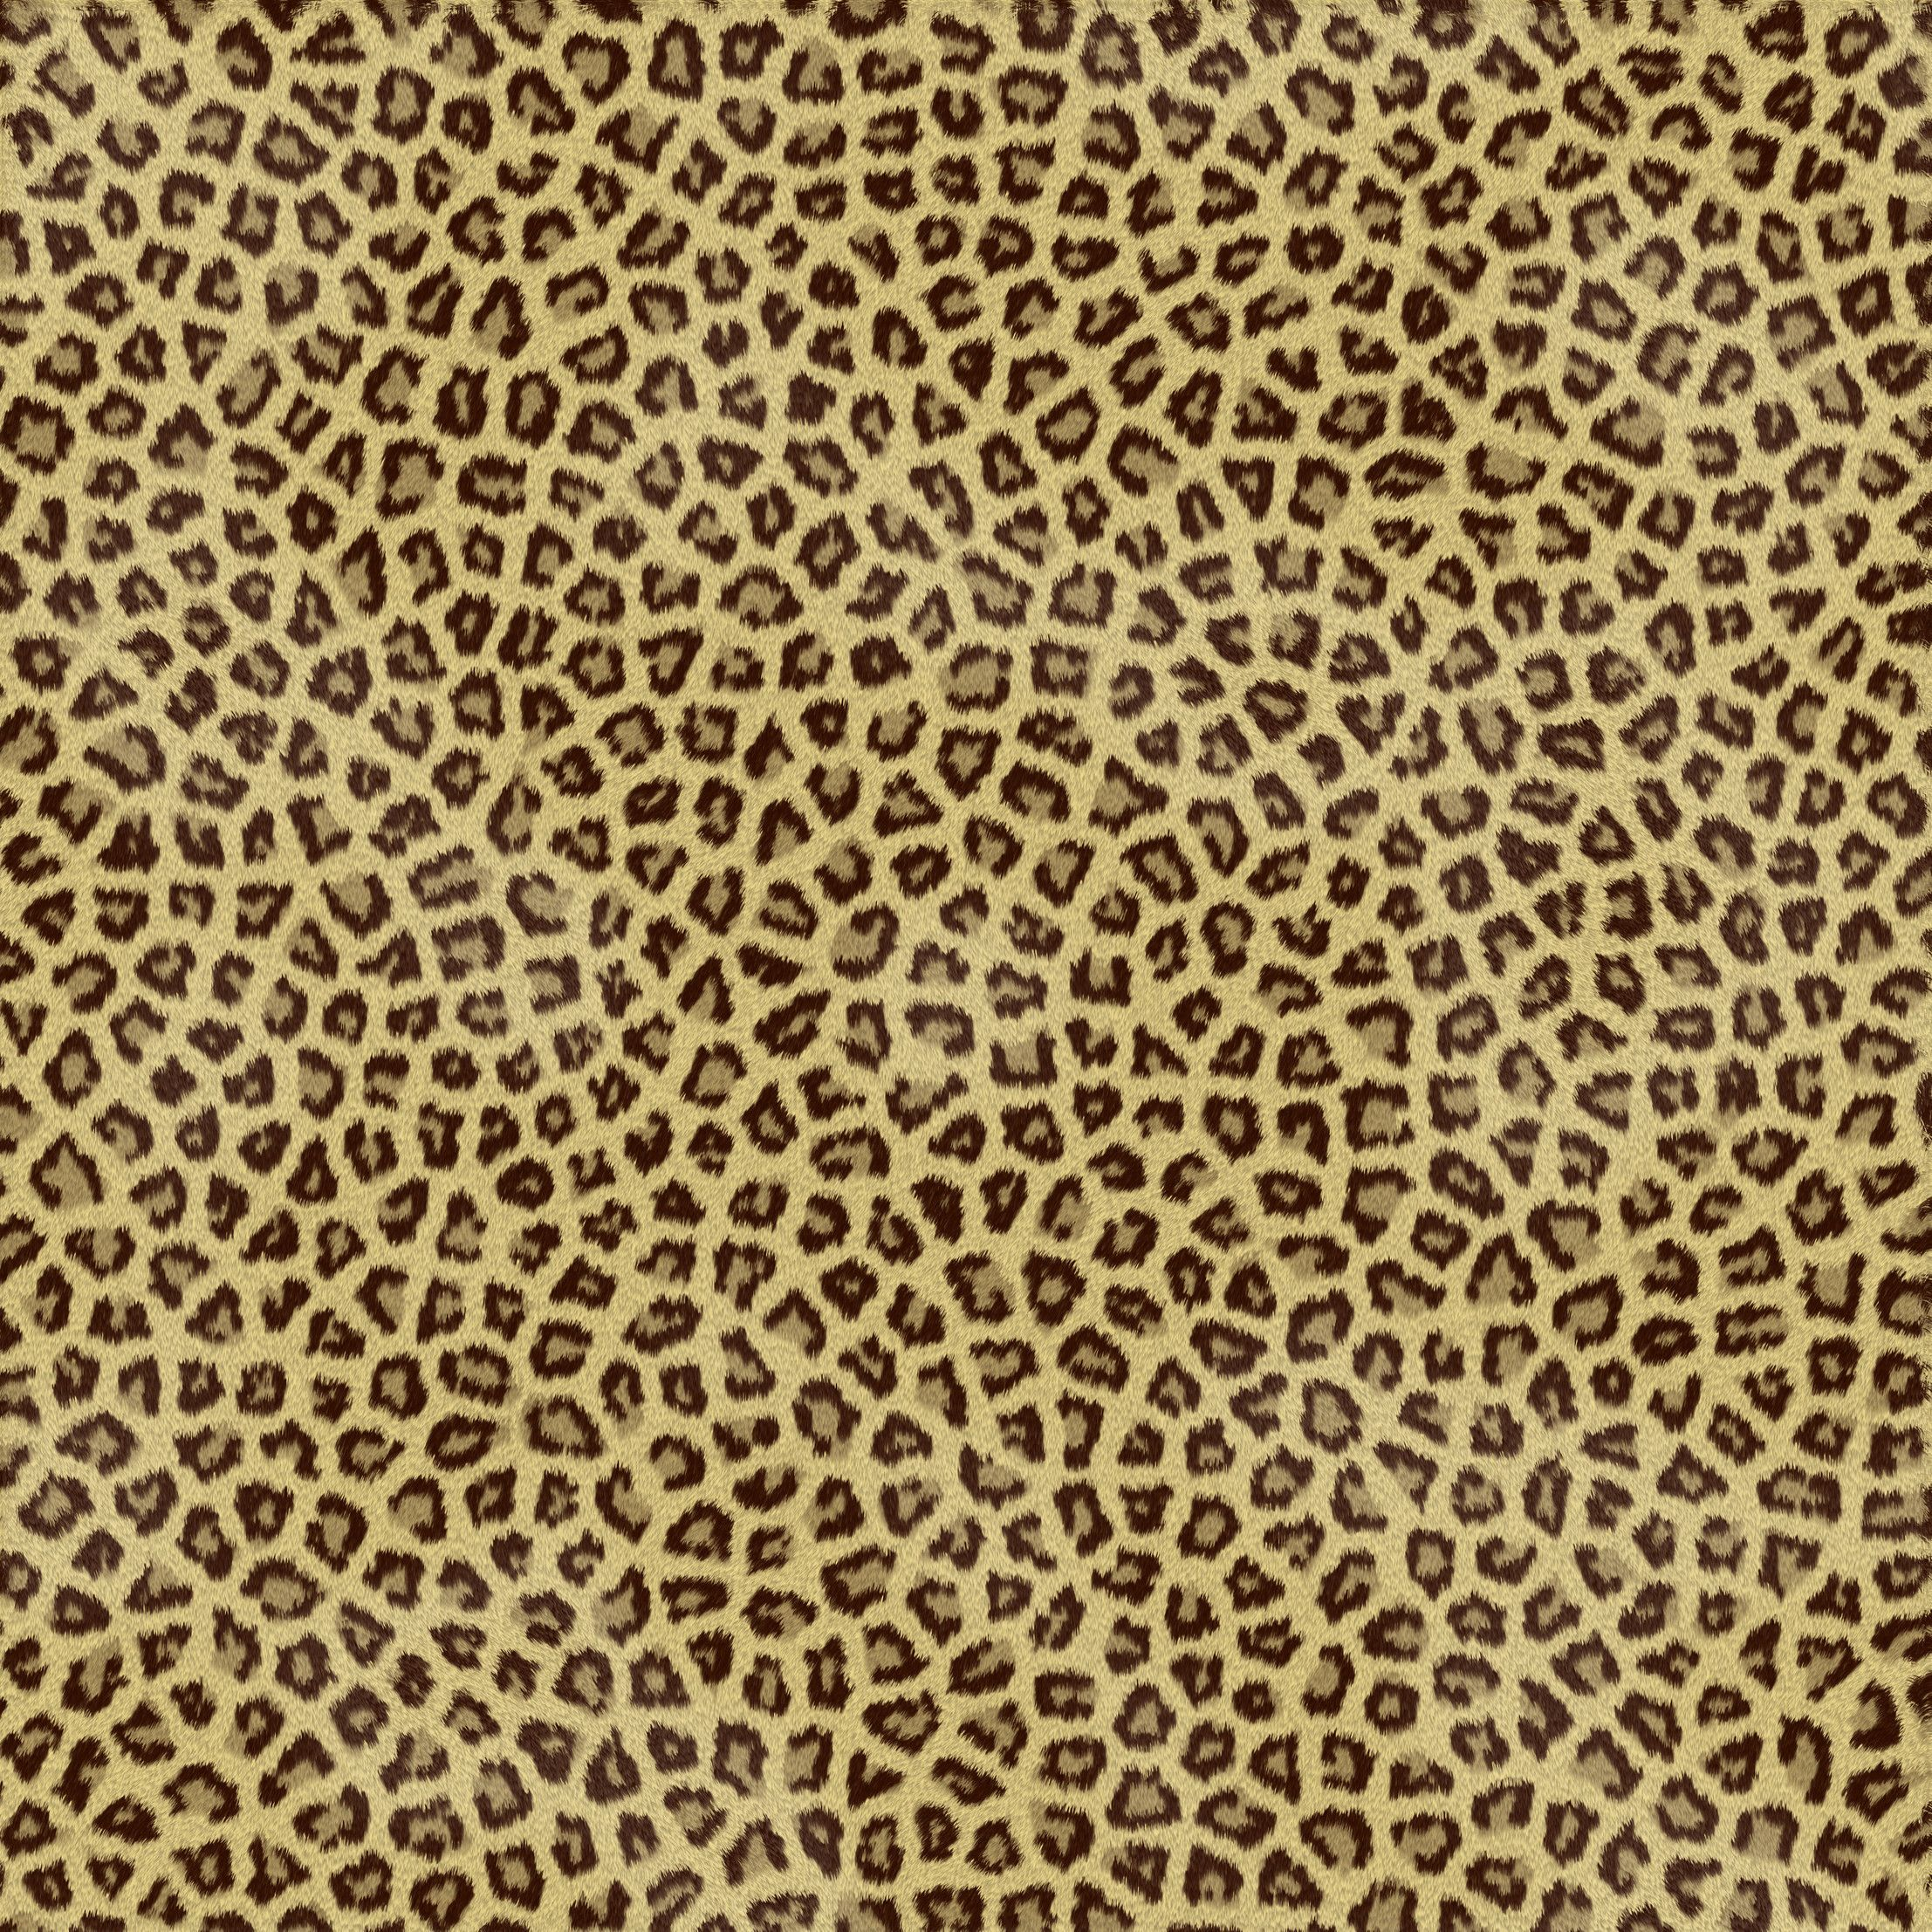 Cheetah Print Background Animal Print Desktop Wallpaper Background Cheetah Print Wallpaper Print Wallpaper Animal Print